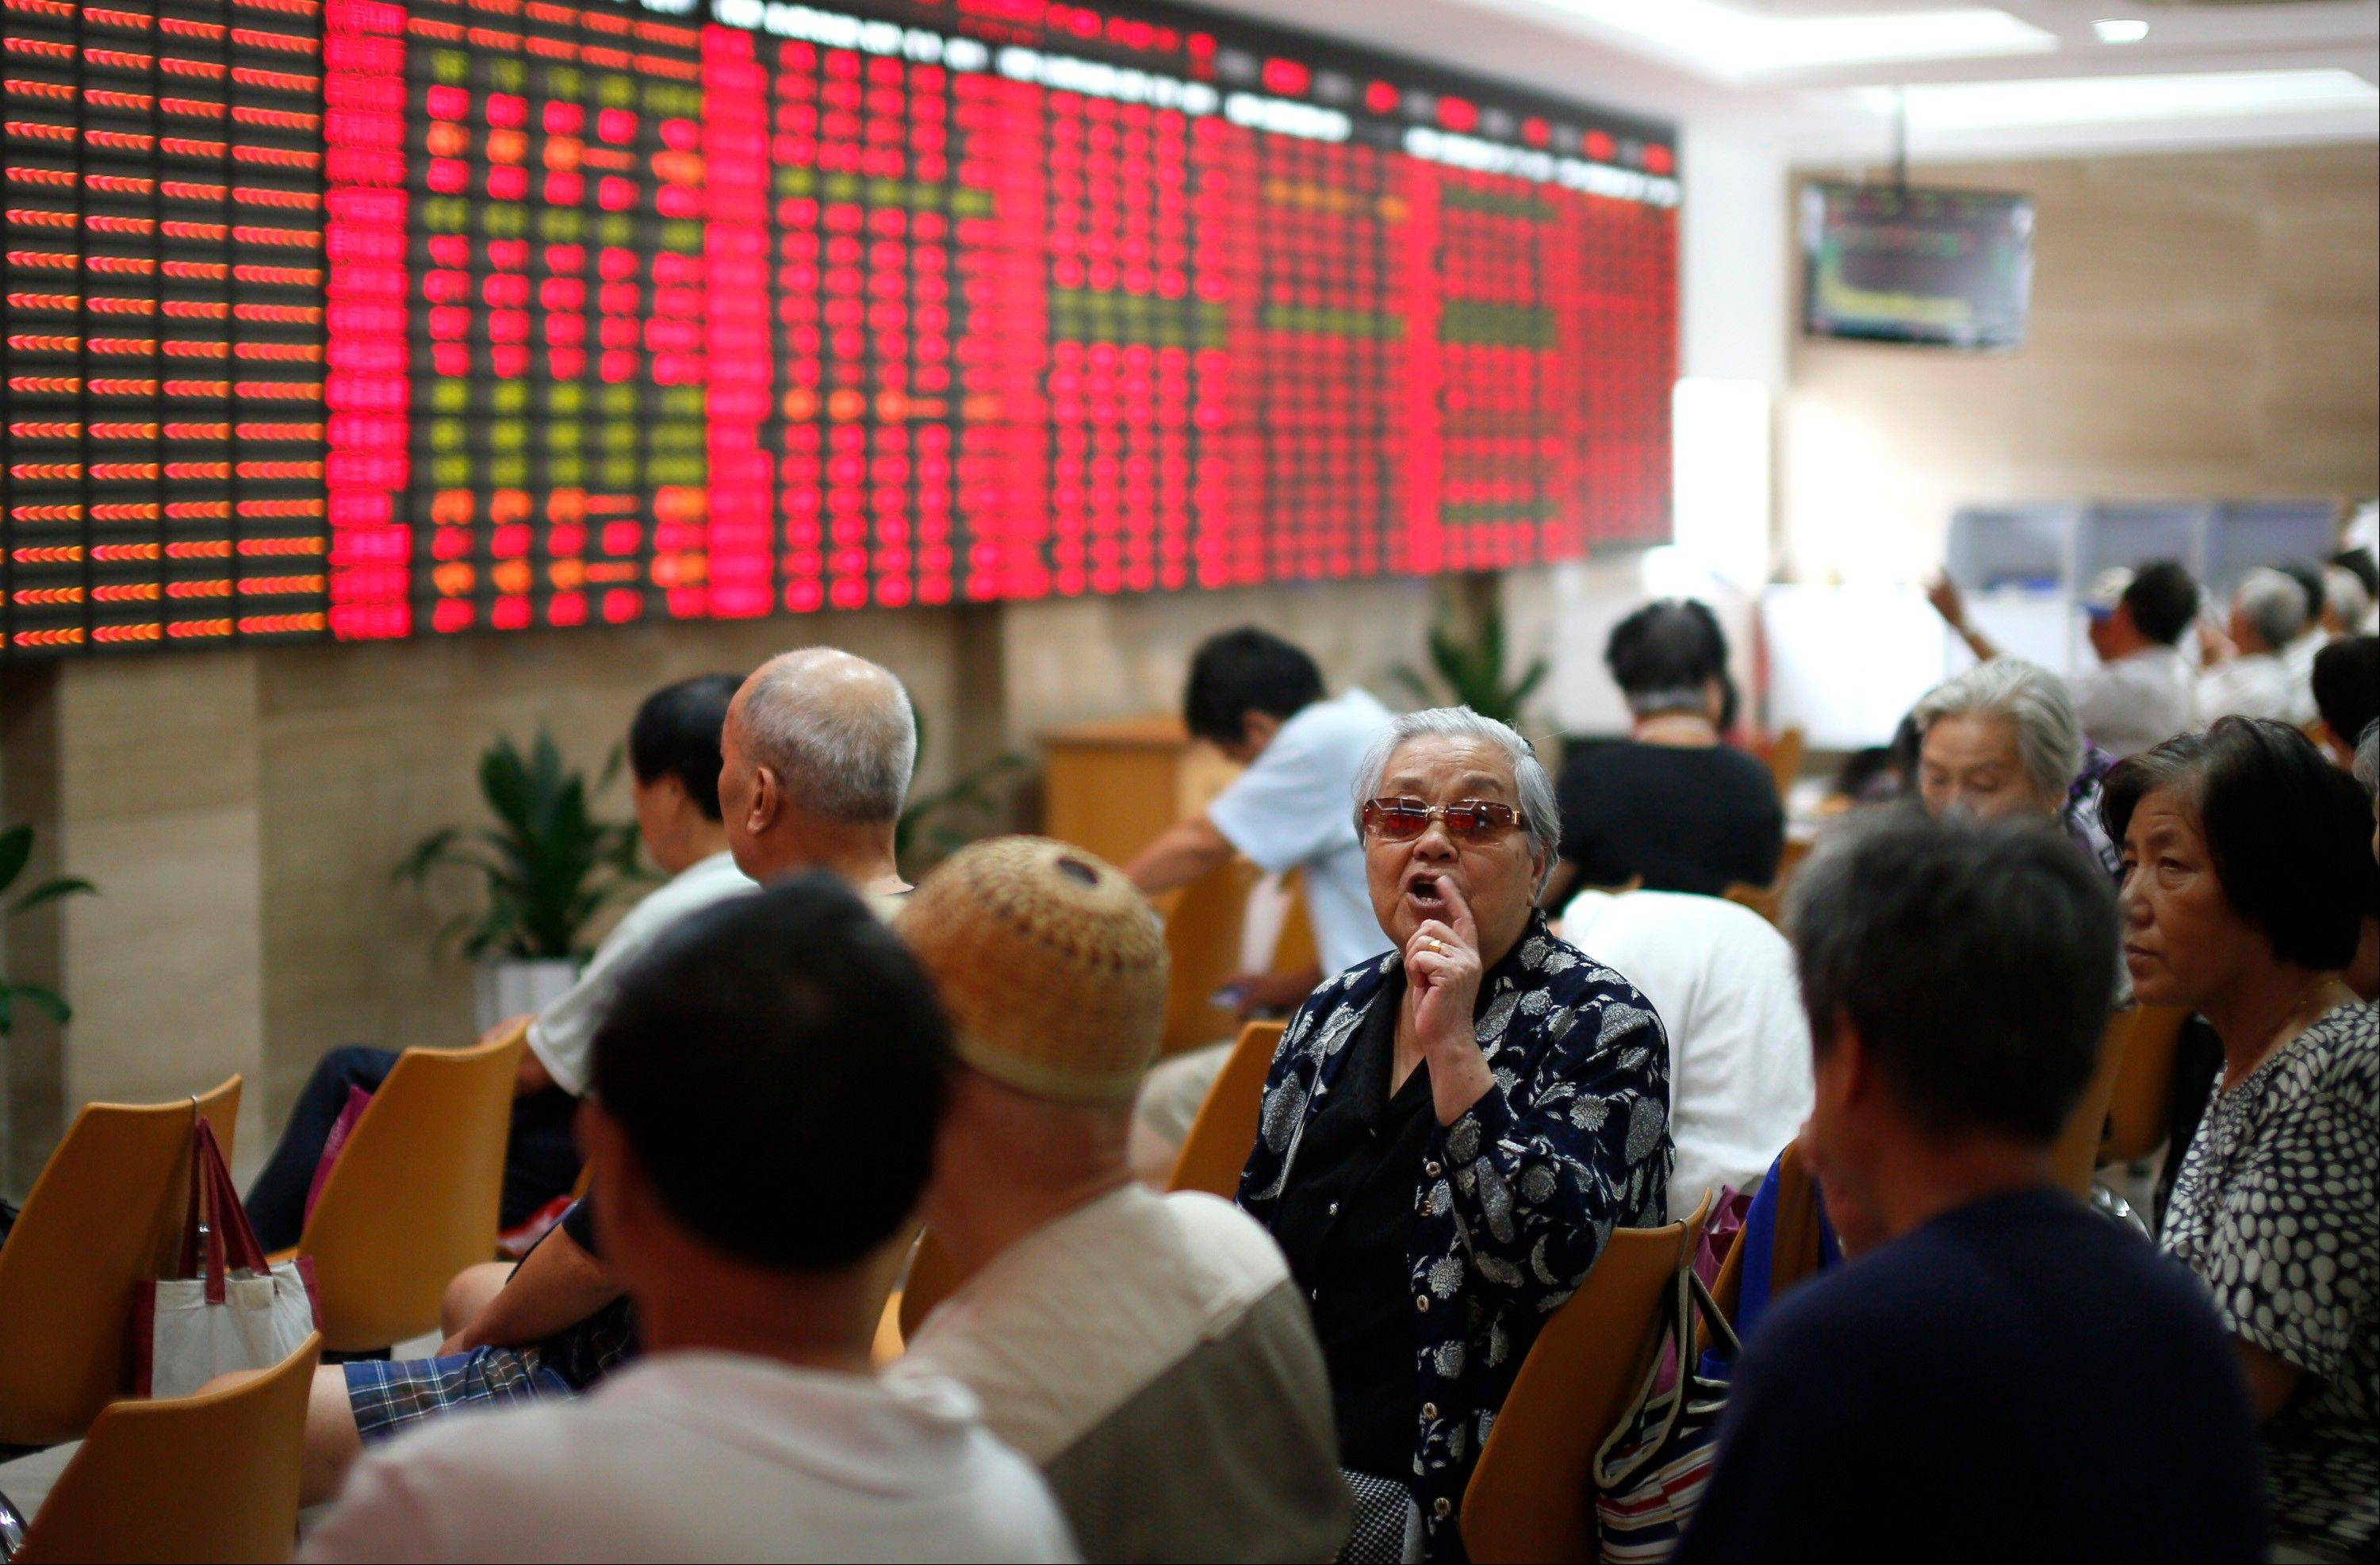 An investor, center, speaks to another while they look at the stock price monitor at a private securities company in Shanghai, China.